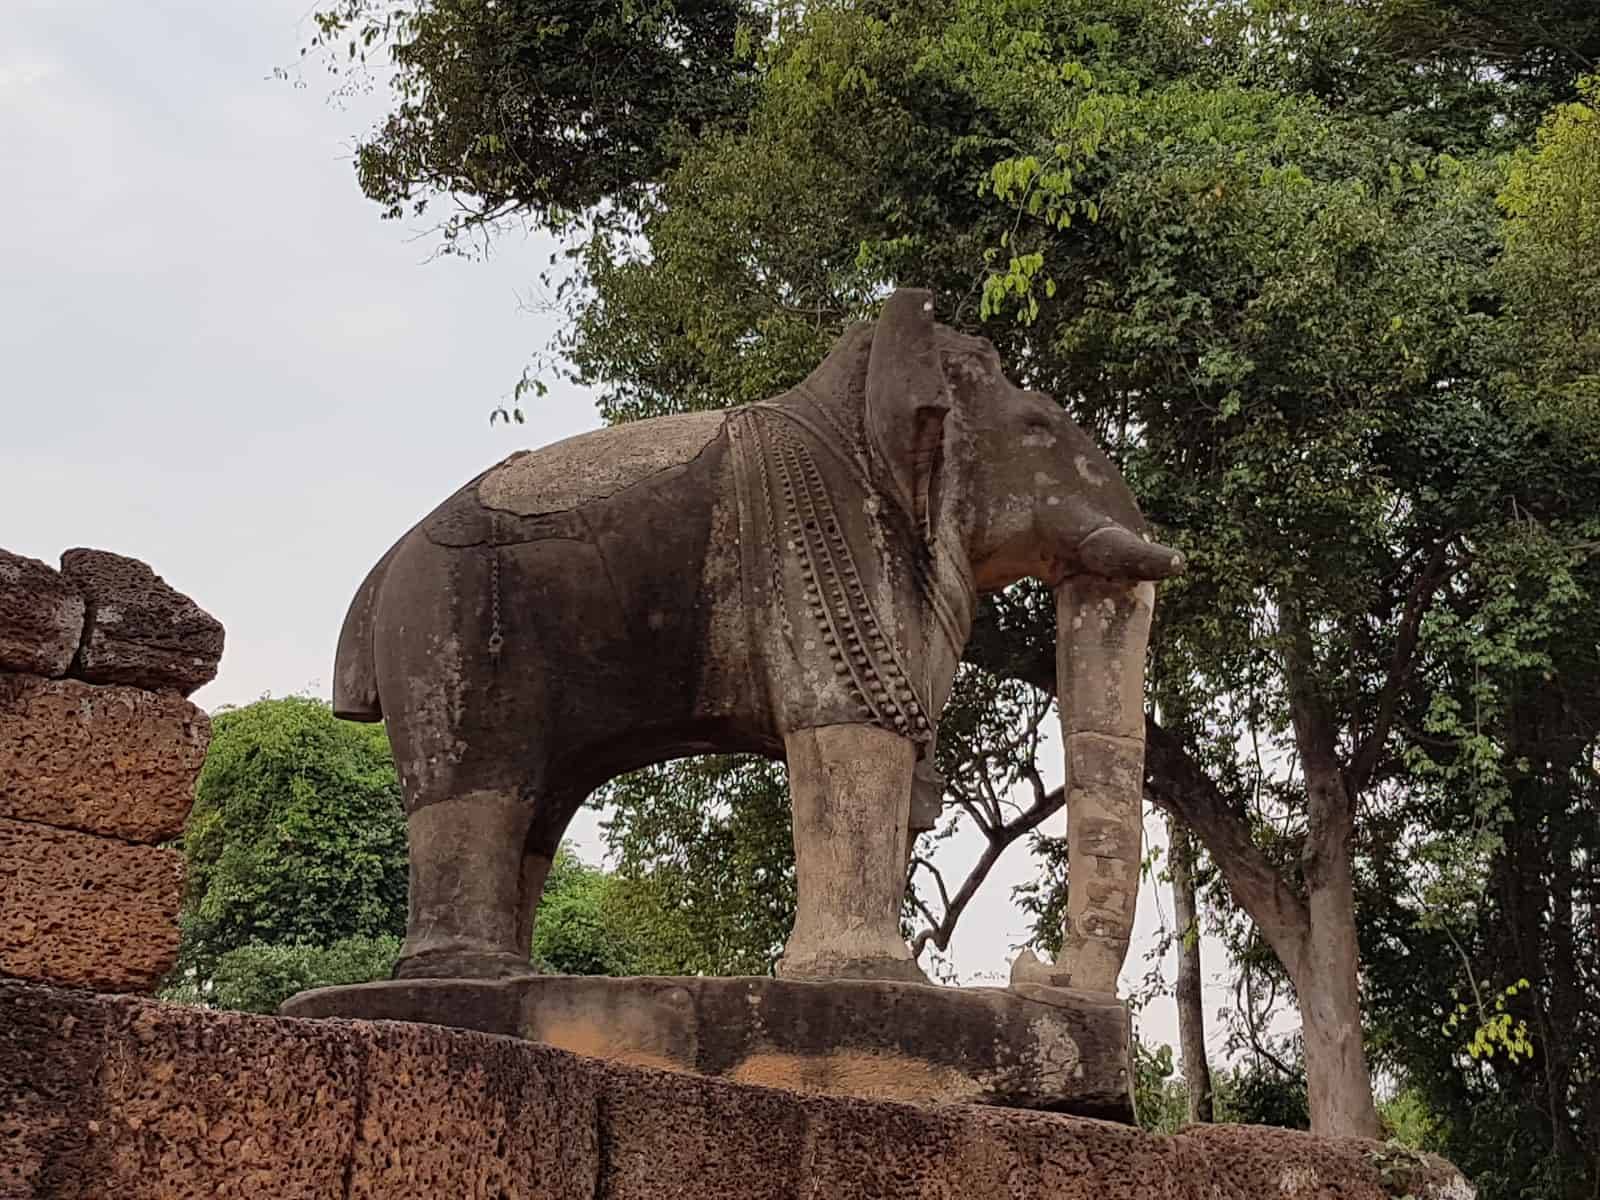 Elephant Sculpture at East Mebon.